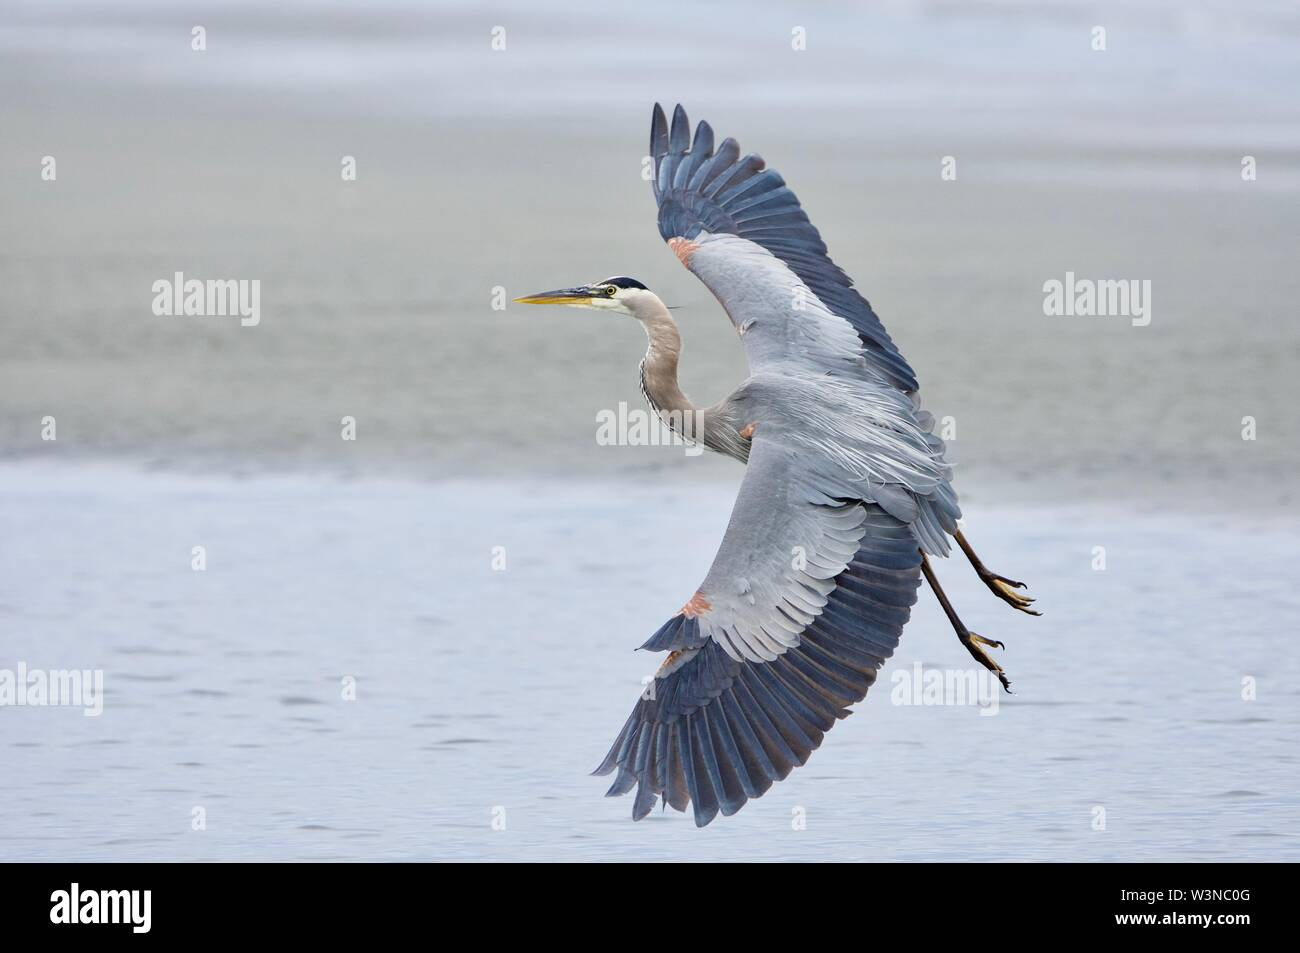 Great blue heron prepares to land on the beach, wings spread wide, Witty's Lagoon, Vancouver Island, British Columbia. - Stock Image